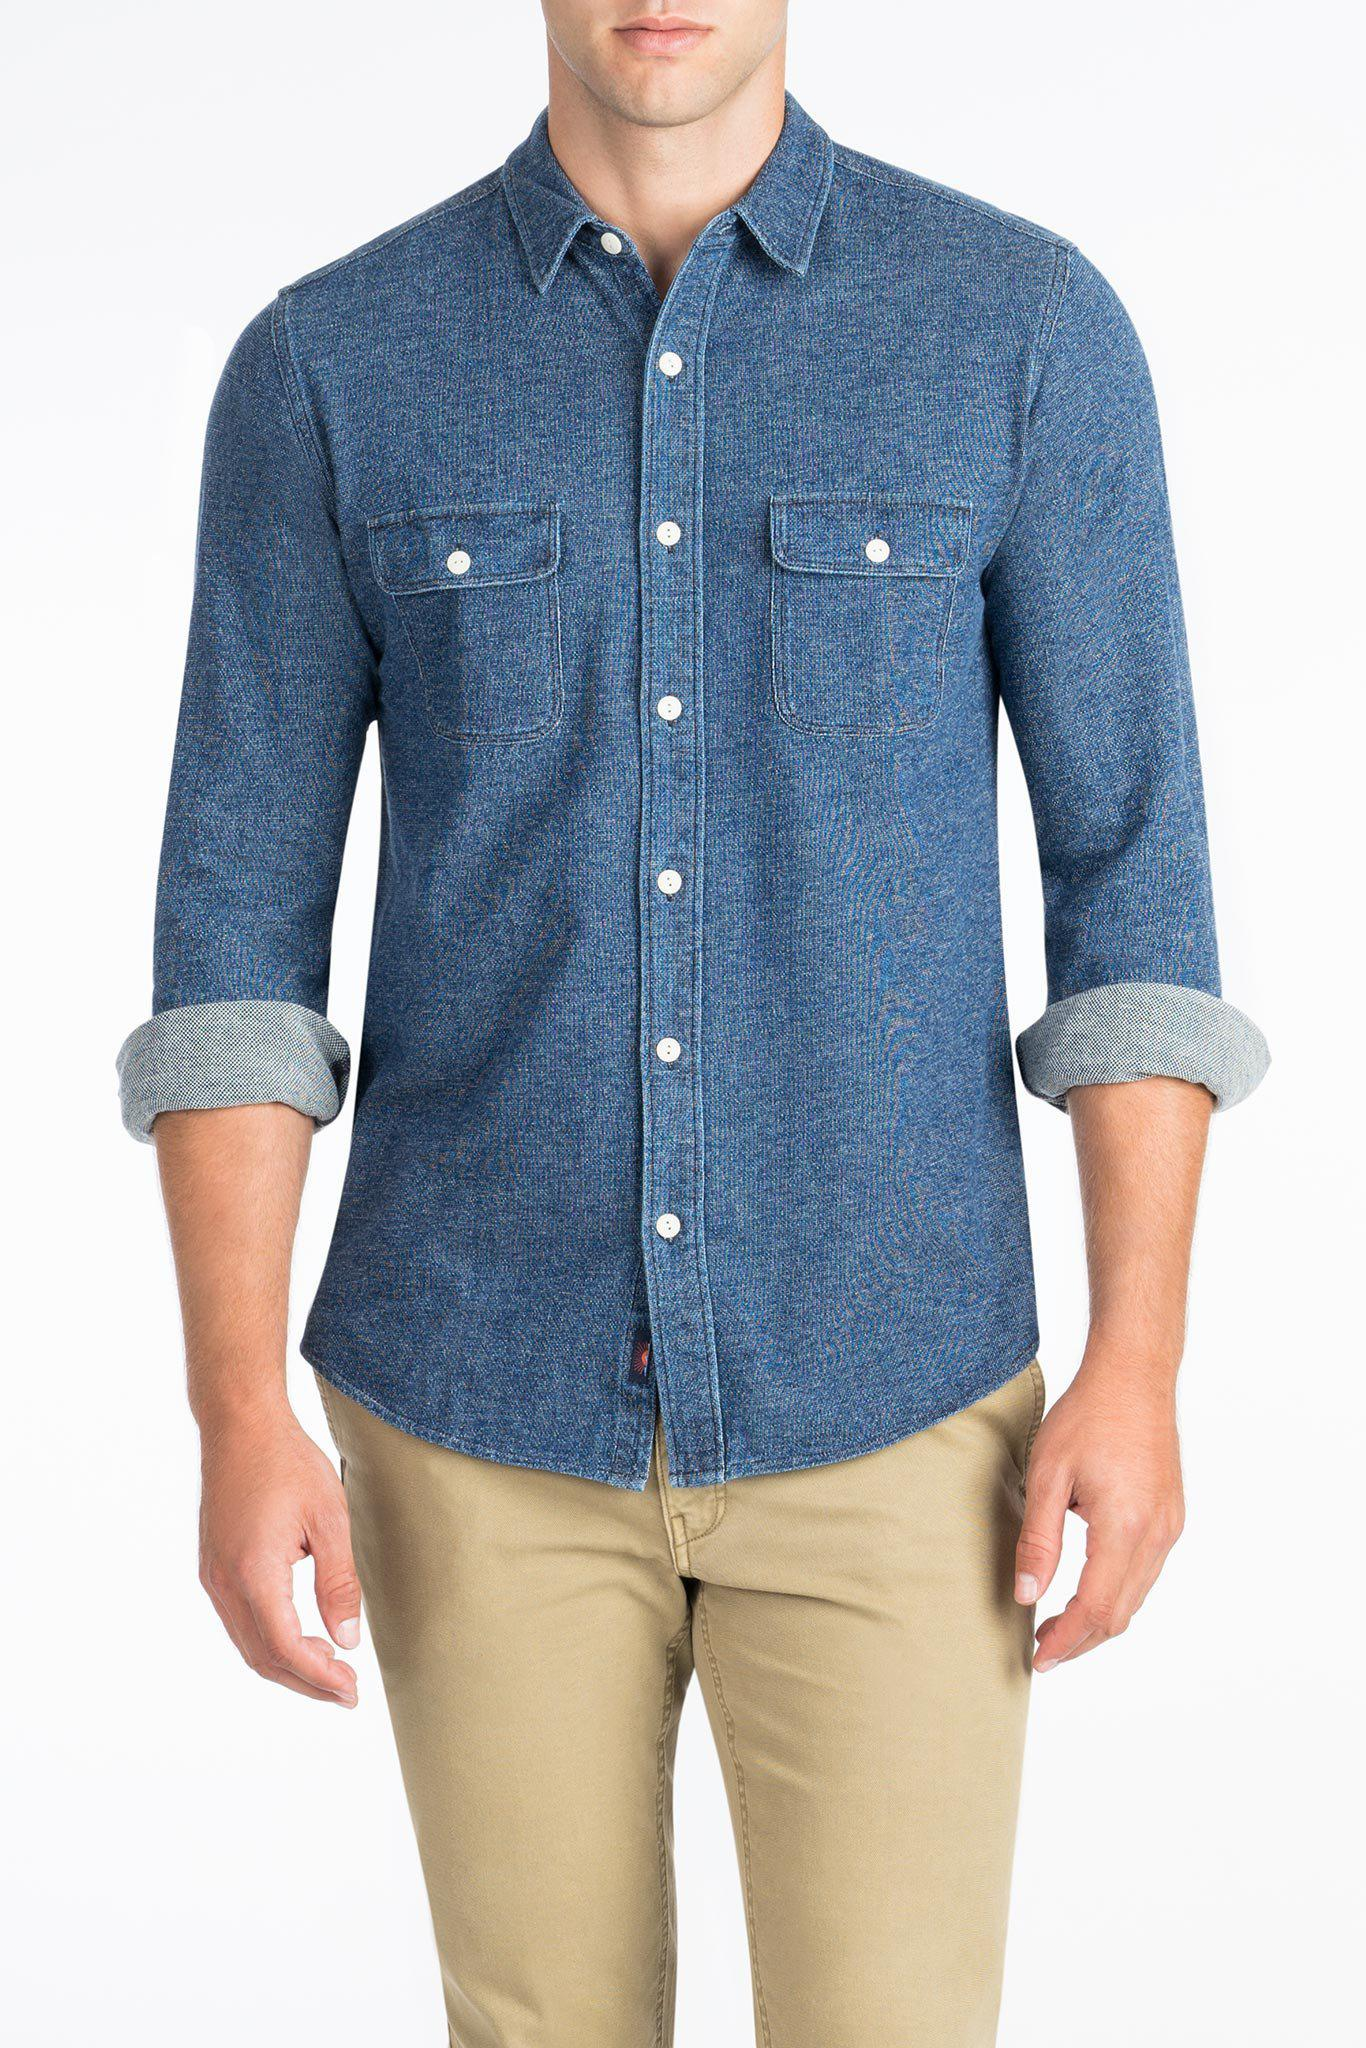 belmar men We've reviewed the best places to buy faherty belmar check double cloth shirt online  the perfect gift for women & men.